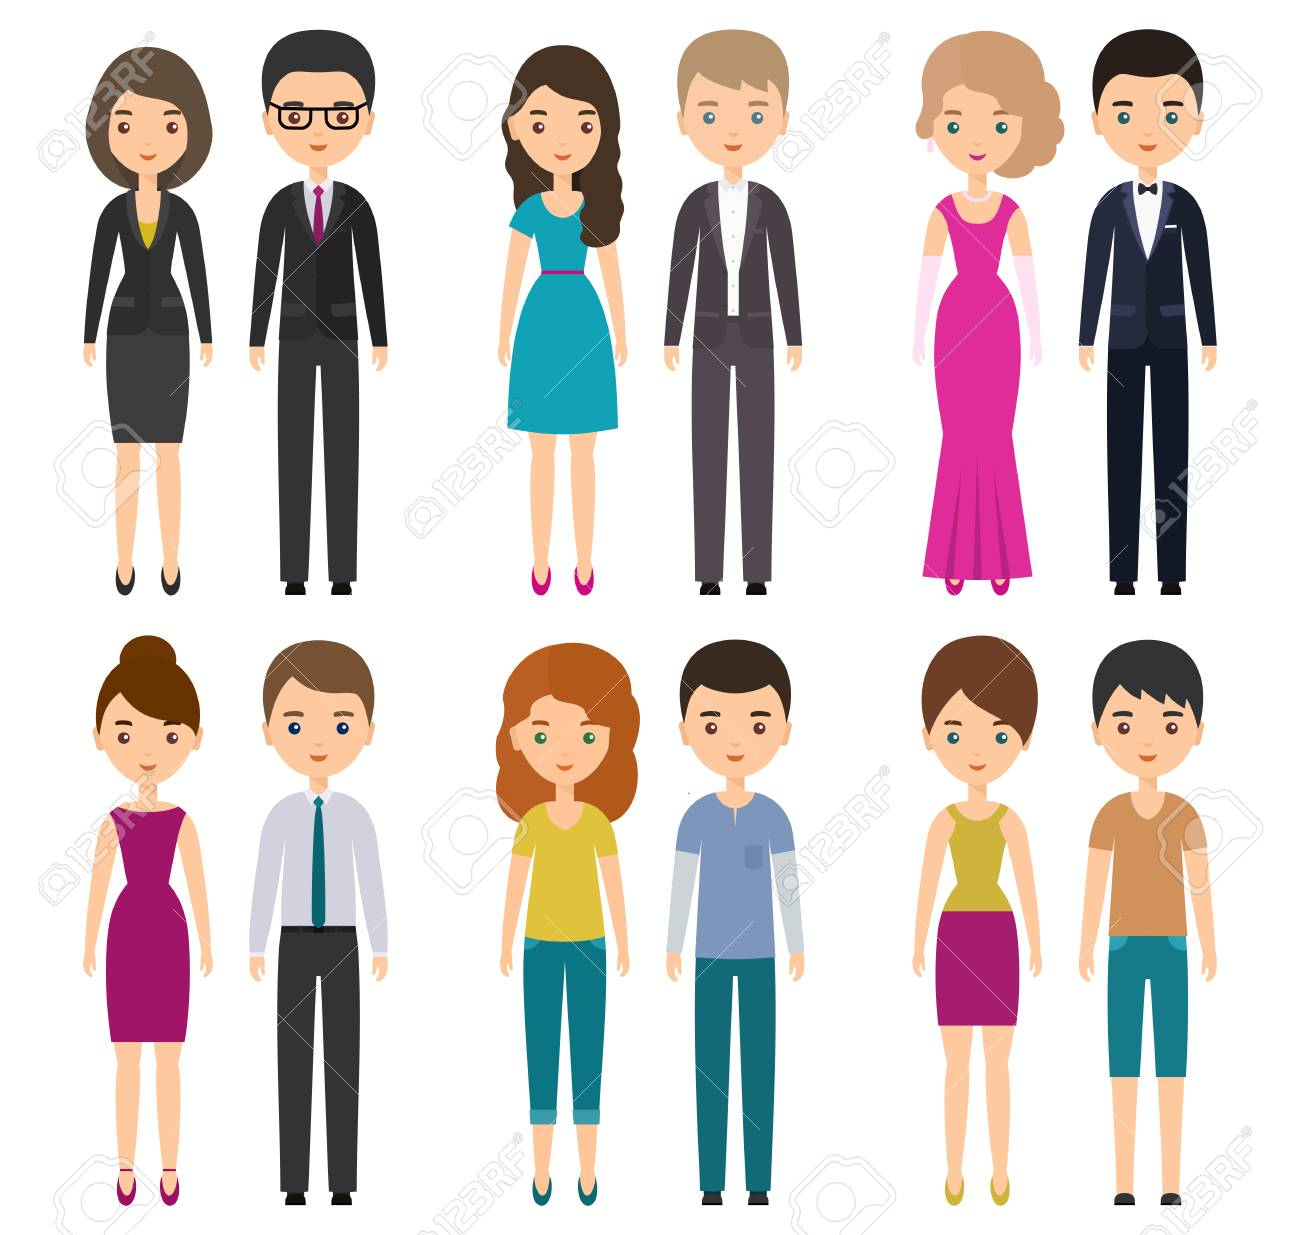 characters flat people in different types of dress code vector